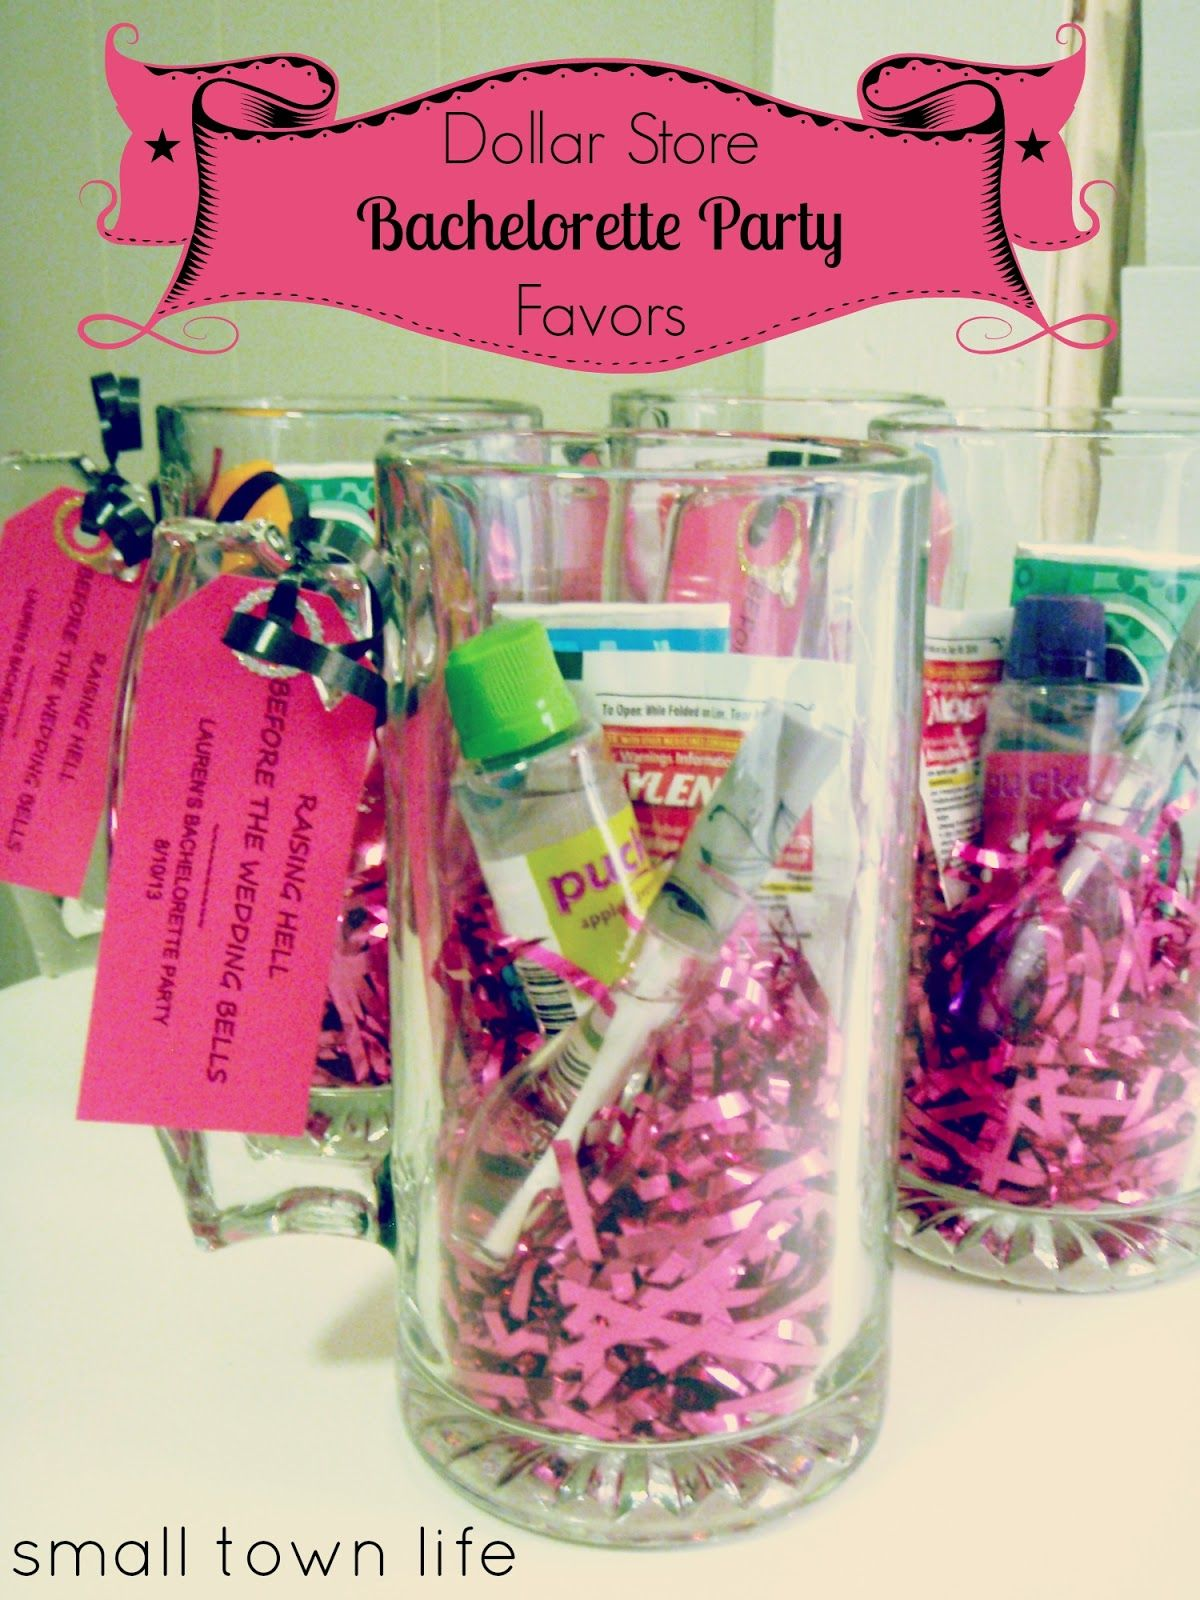 dollar store bachelorette party favors - Party Decoration Stores